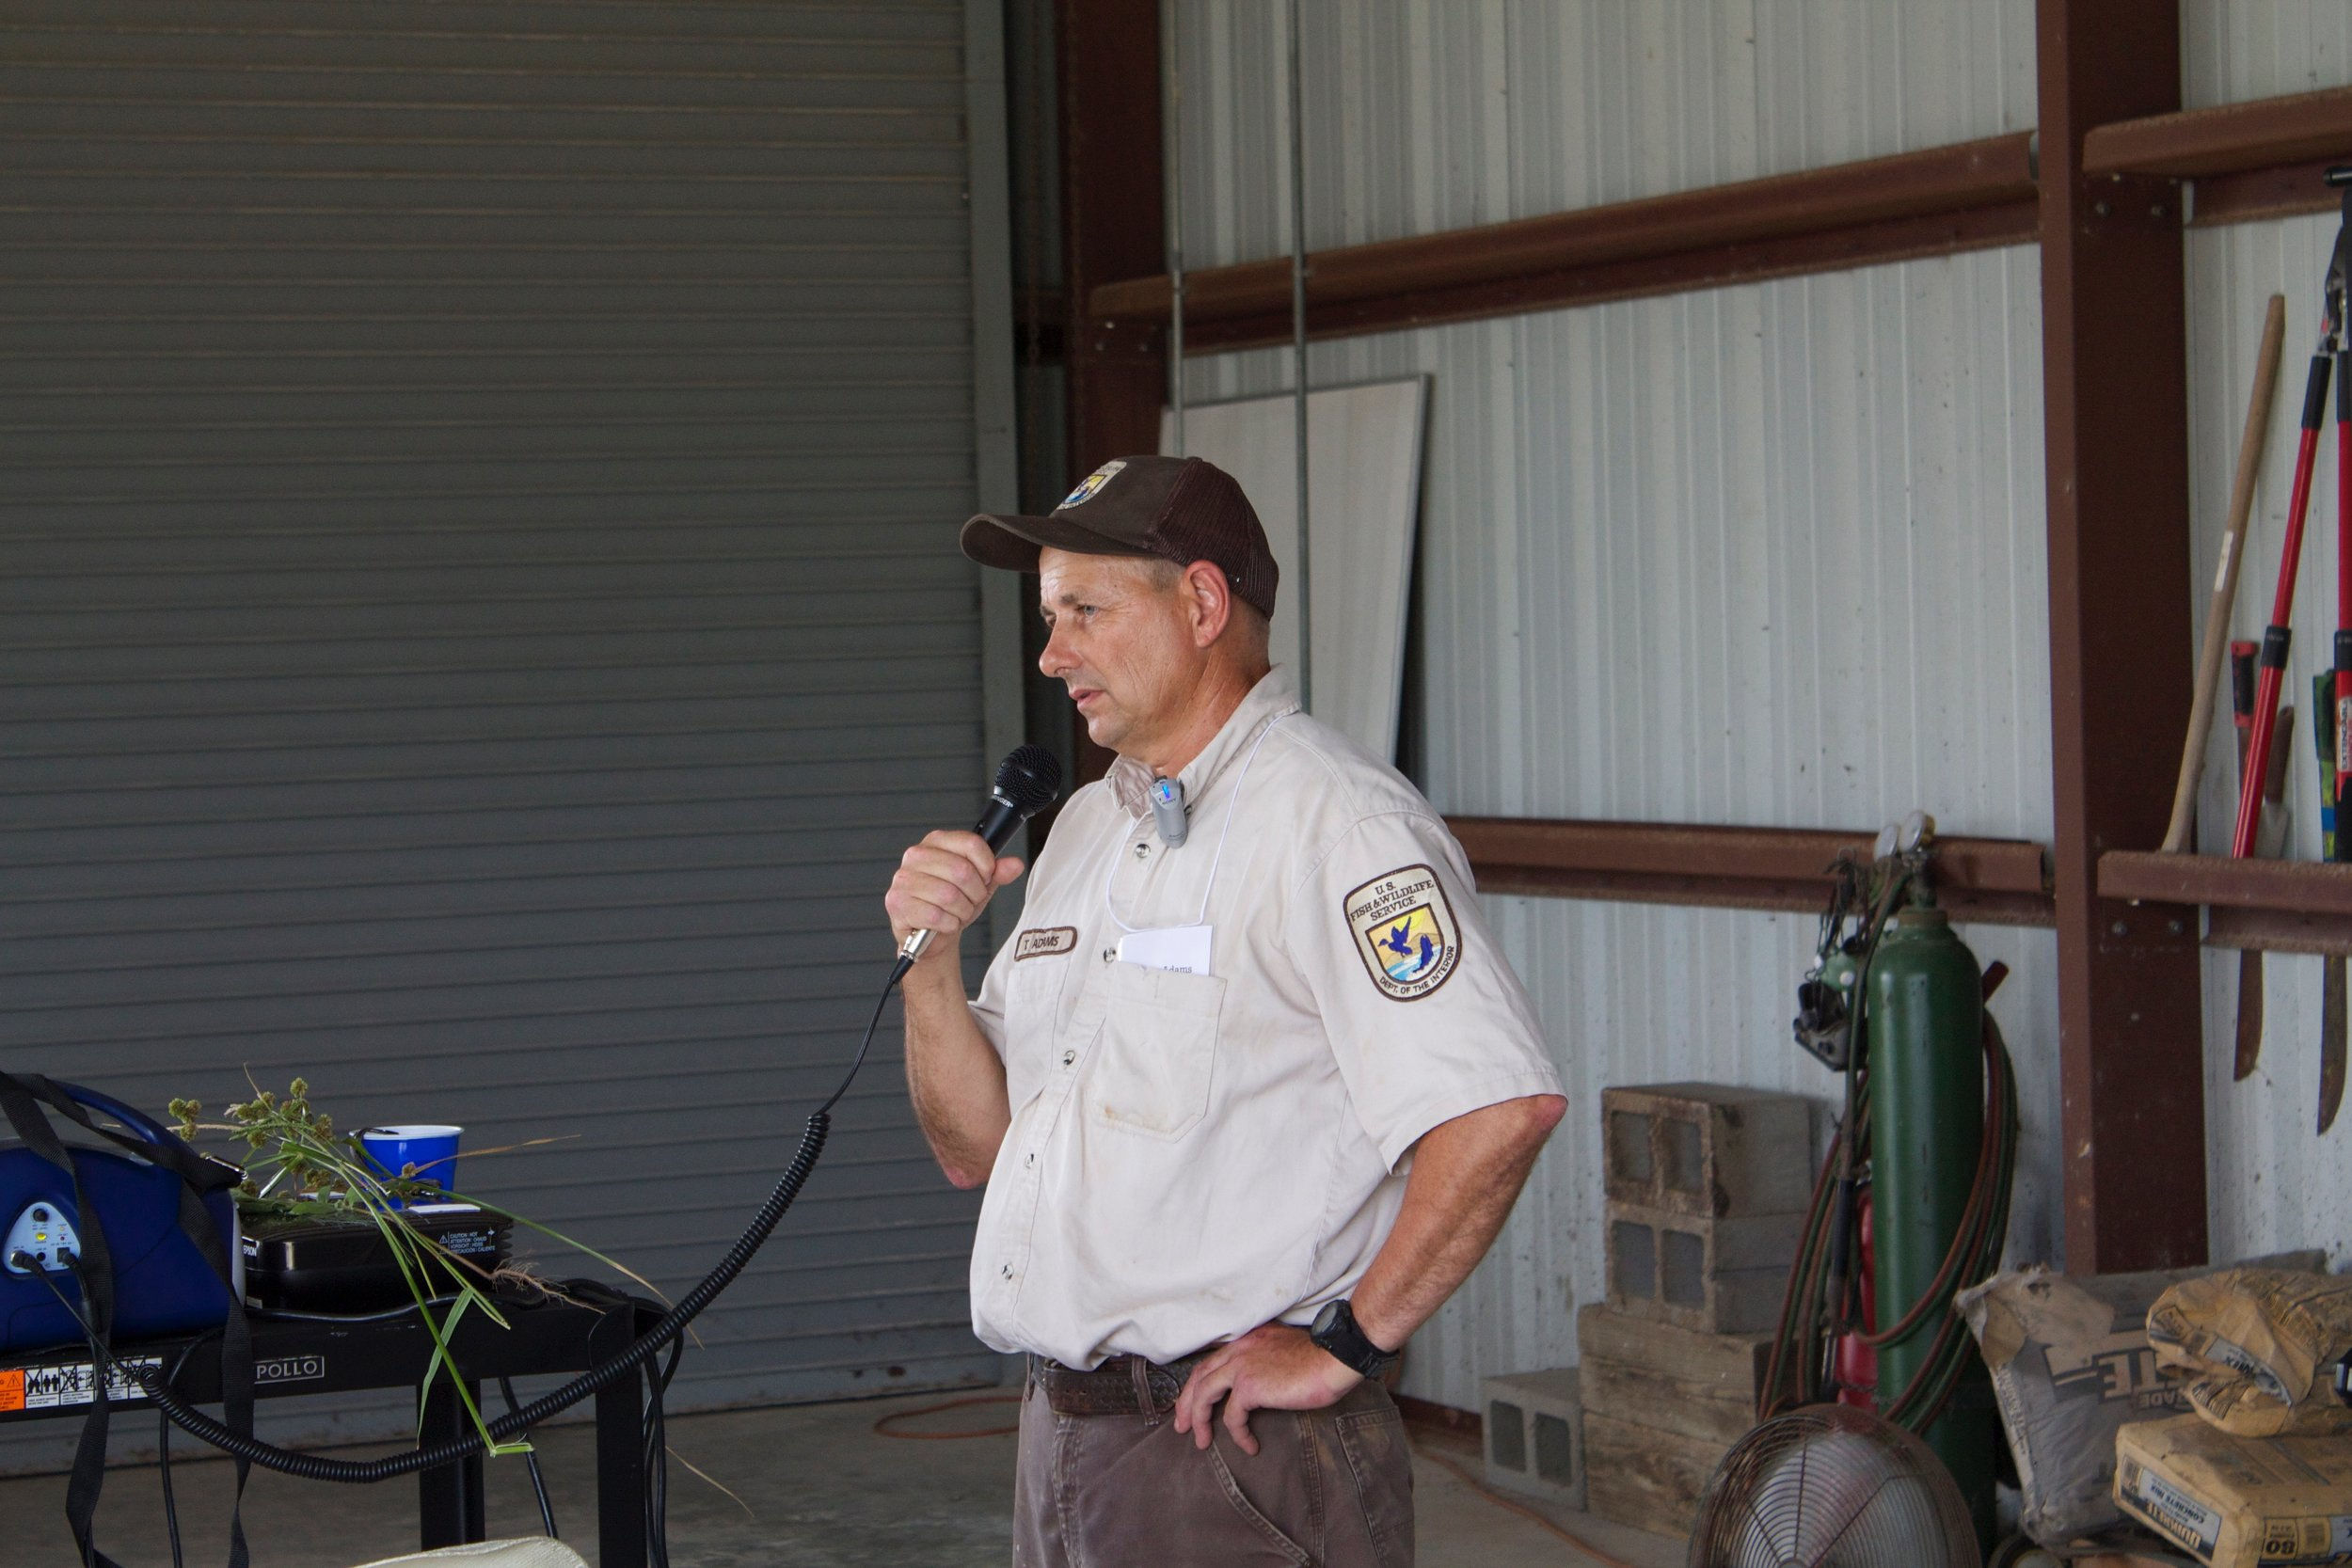 Thomas Adams, U.S. Fish & Wildlife Service